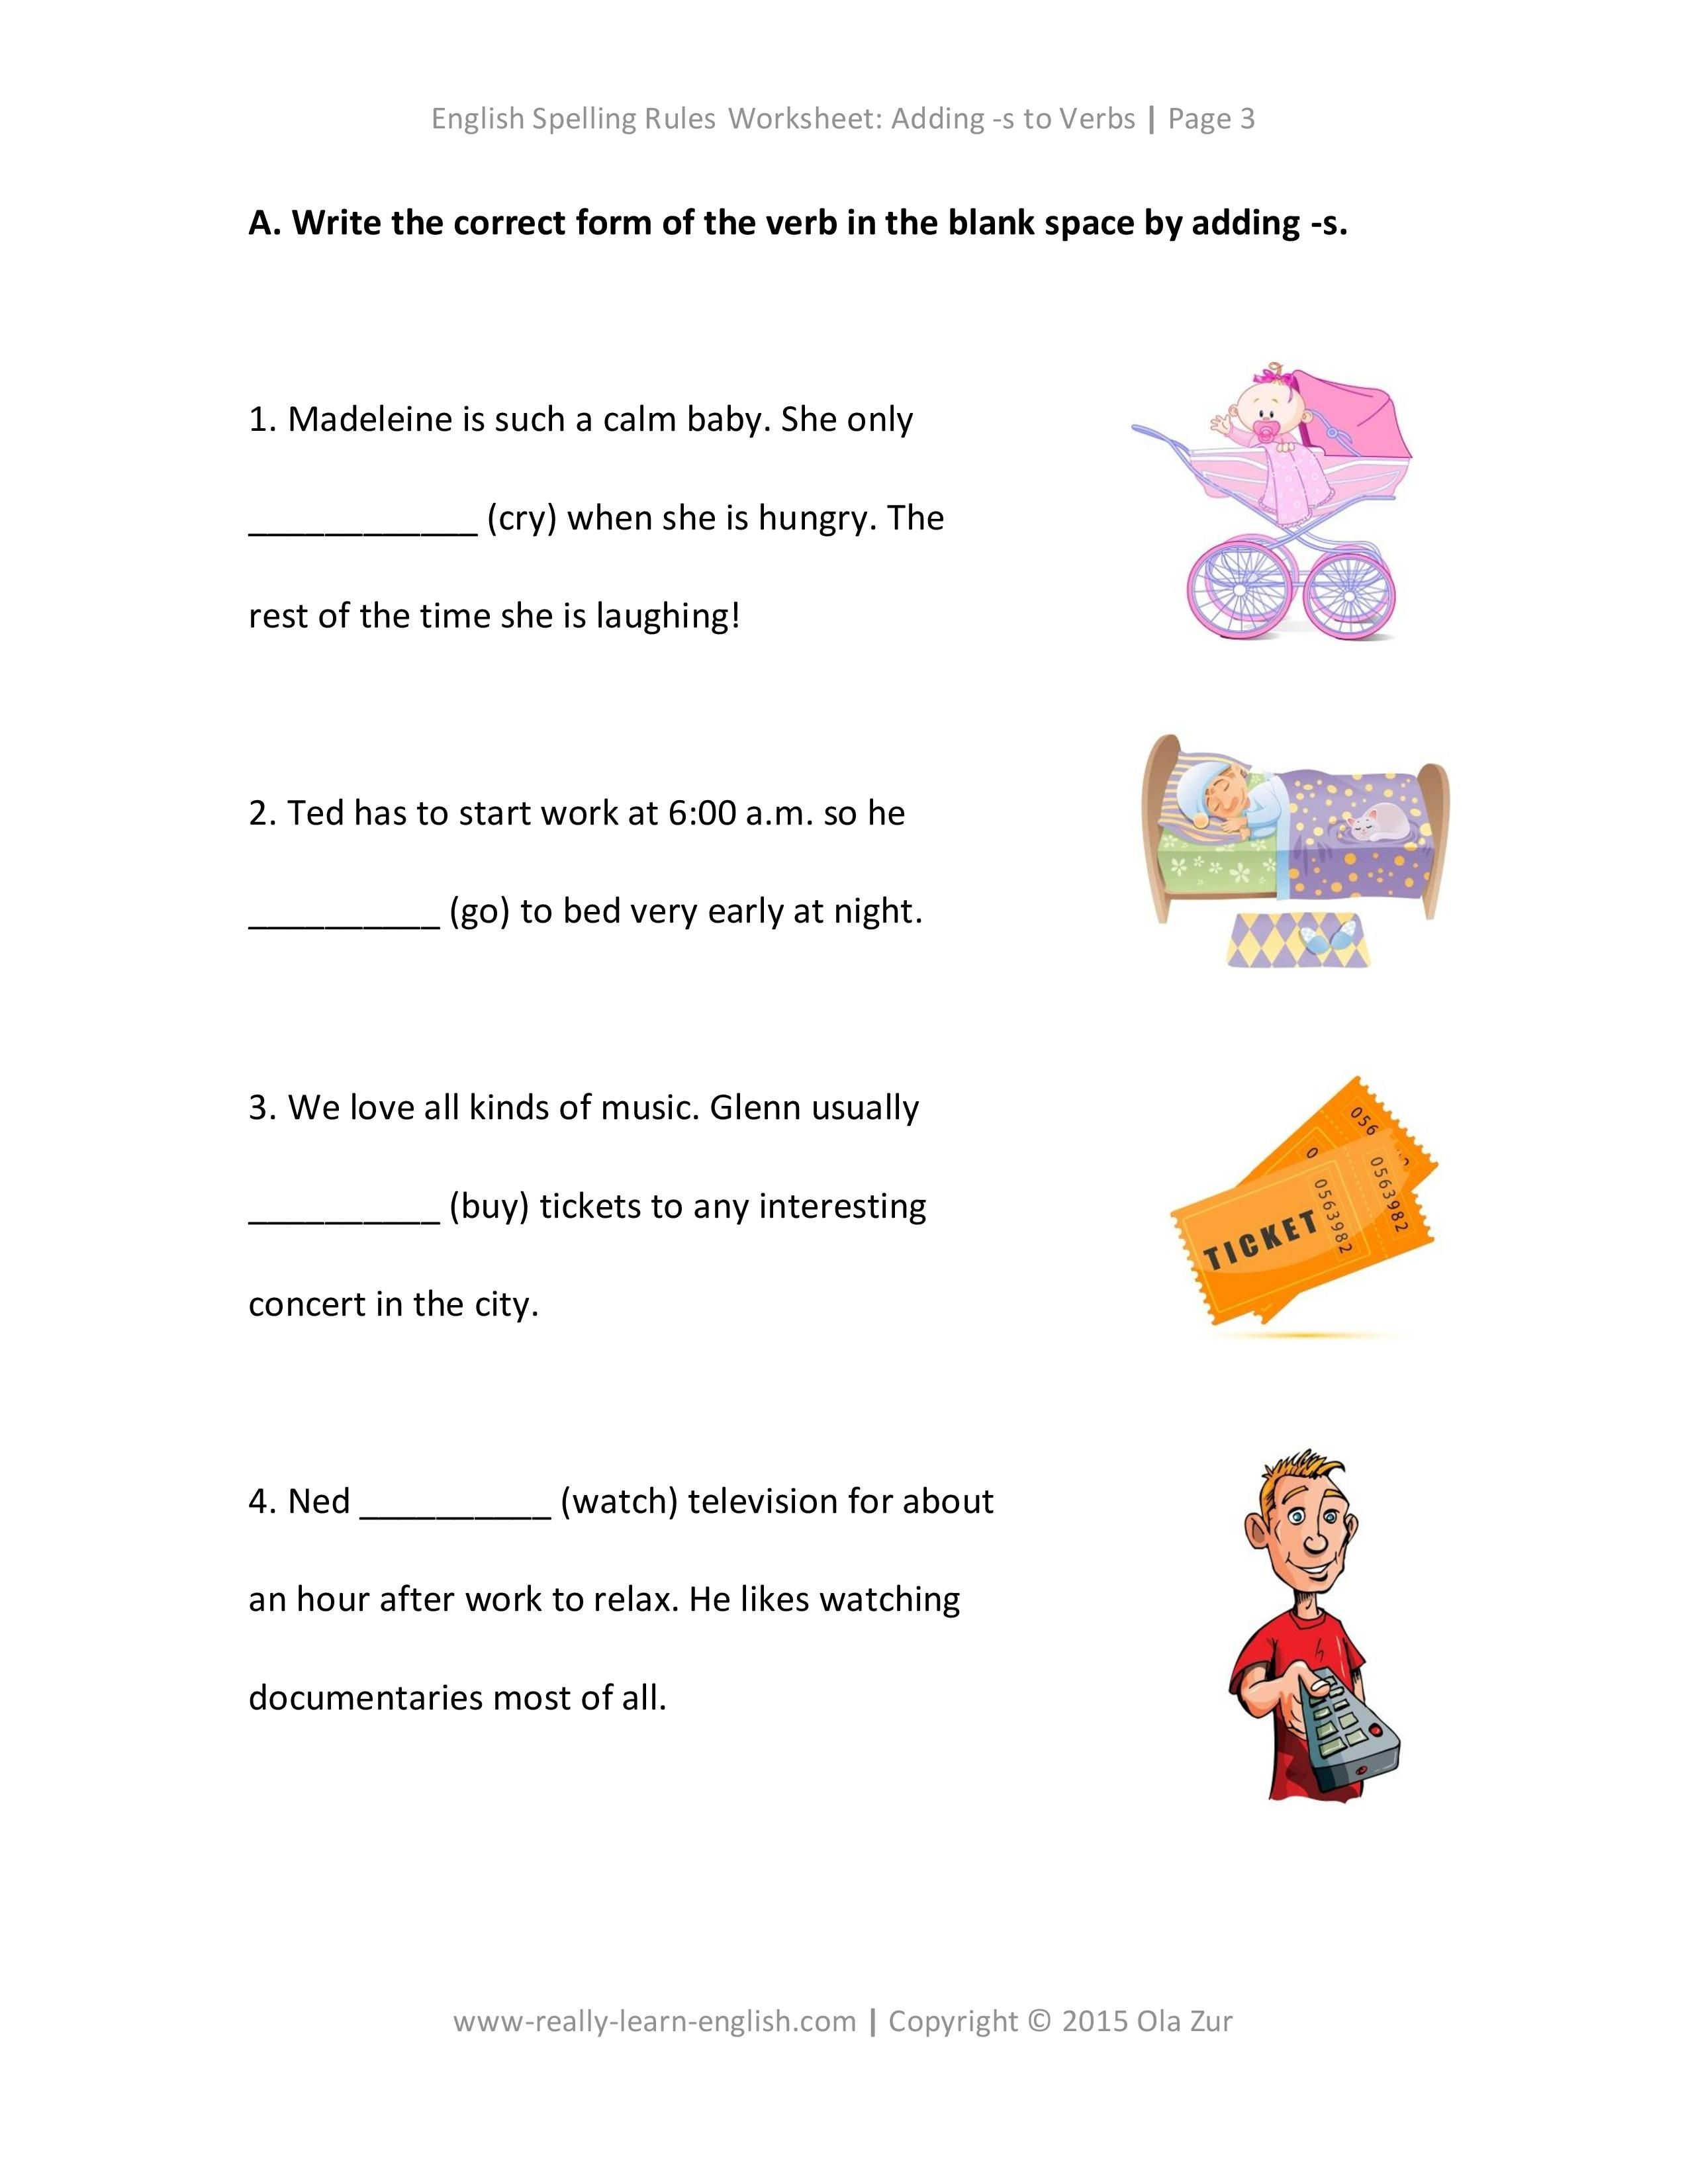 worksheet Spelling Rules Worksheets spelling rules how to add s a verb english free worksheets adding verbs